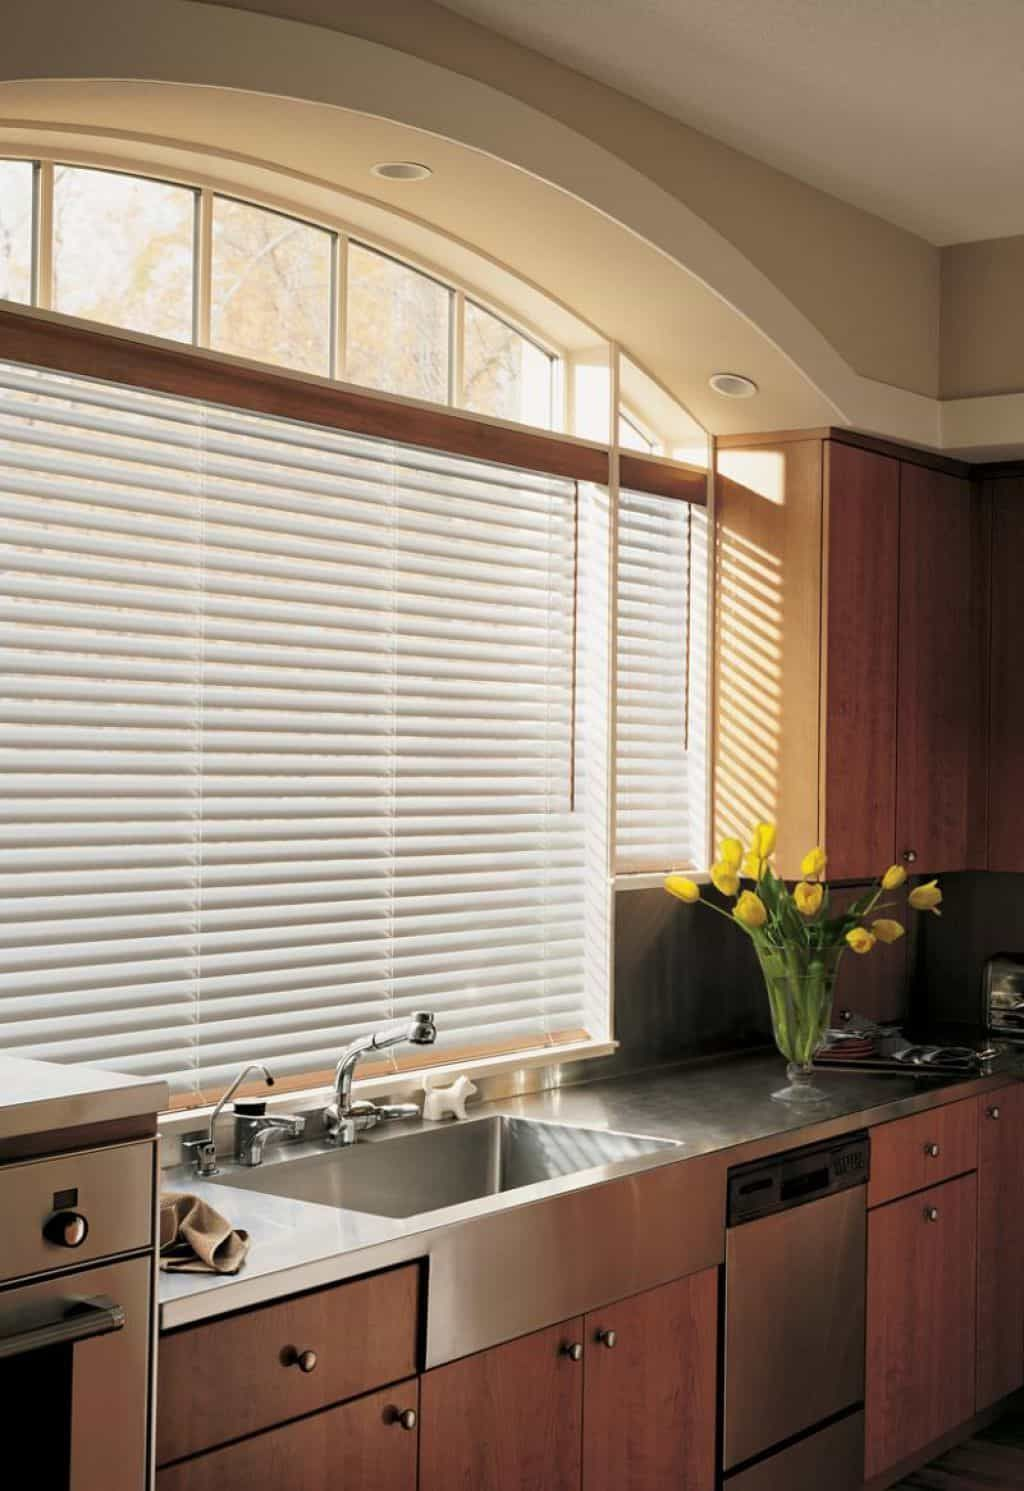 Kitchen window kitchen blinds  functional and decorative kitchen window blinds